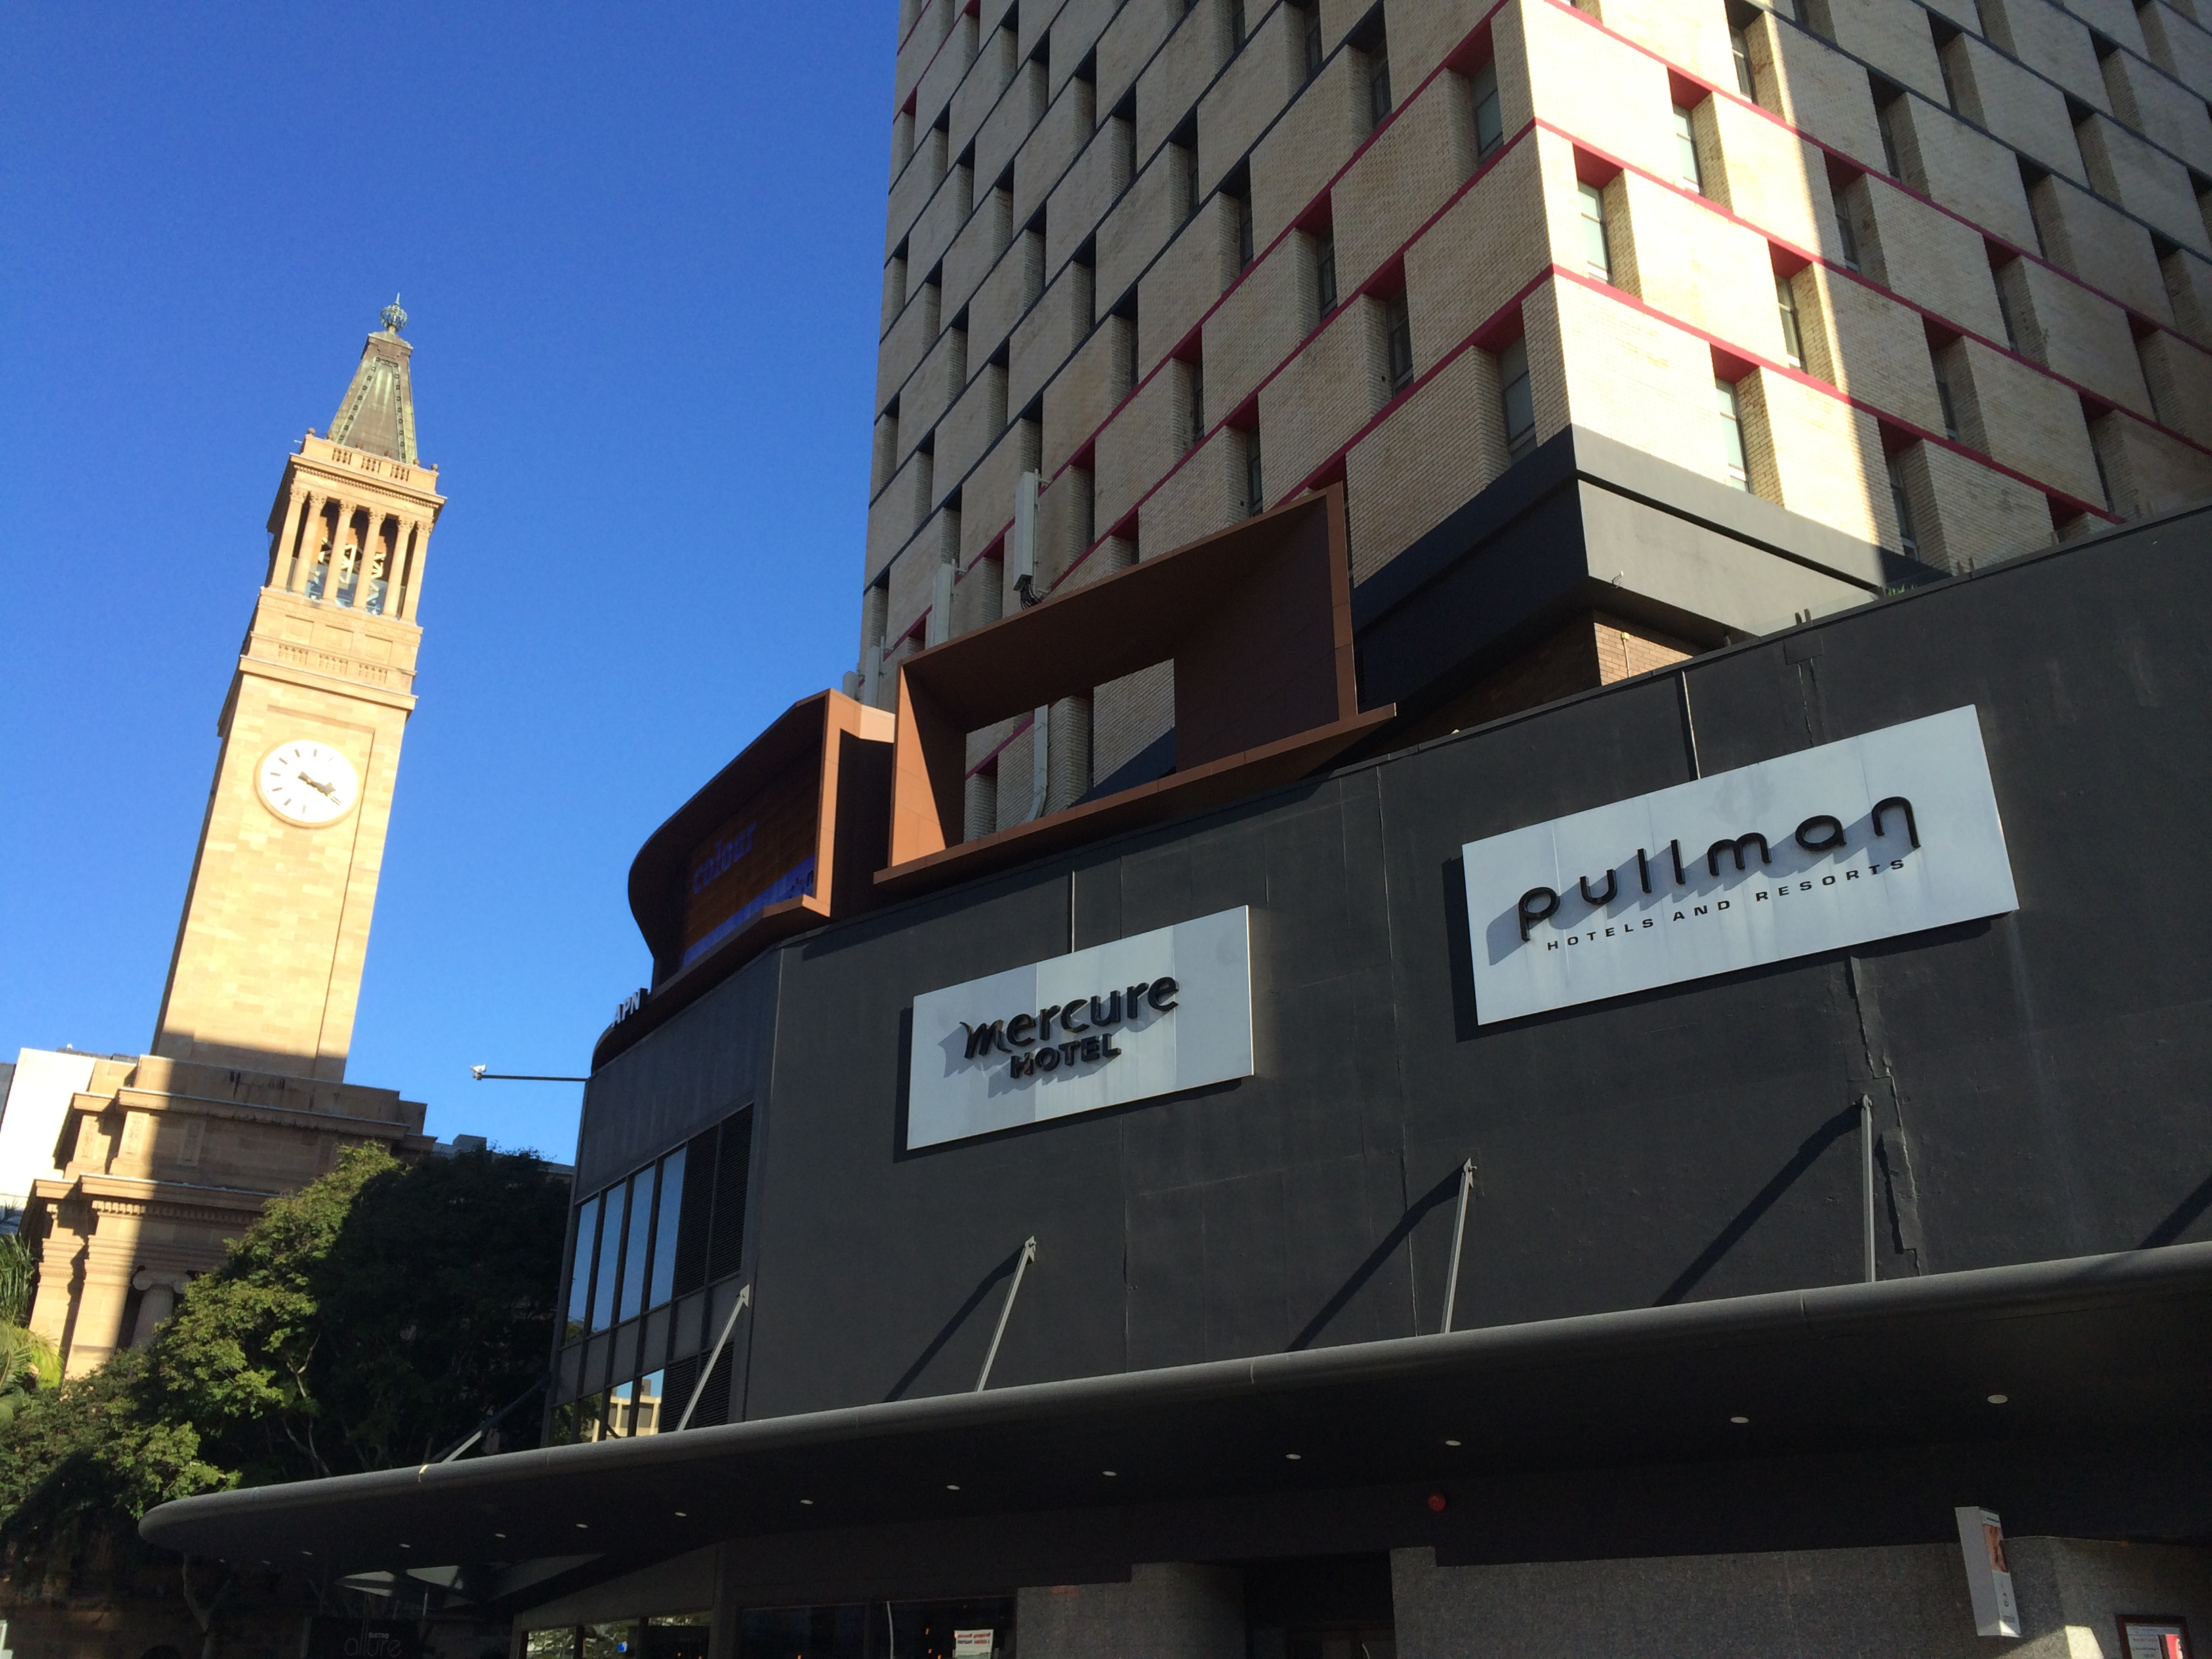 Pullman Brisbane - King George Square, the PyCon AU 2015 venue.